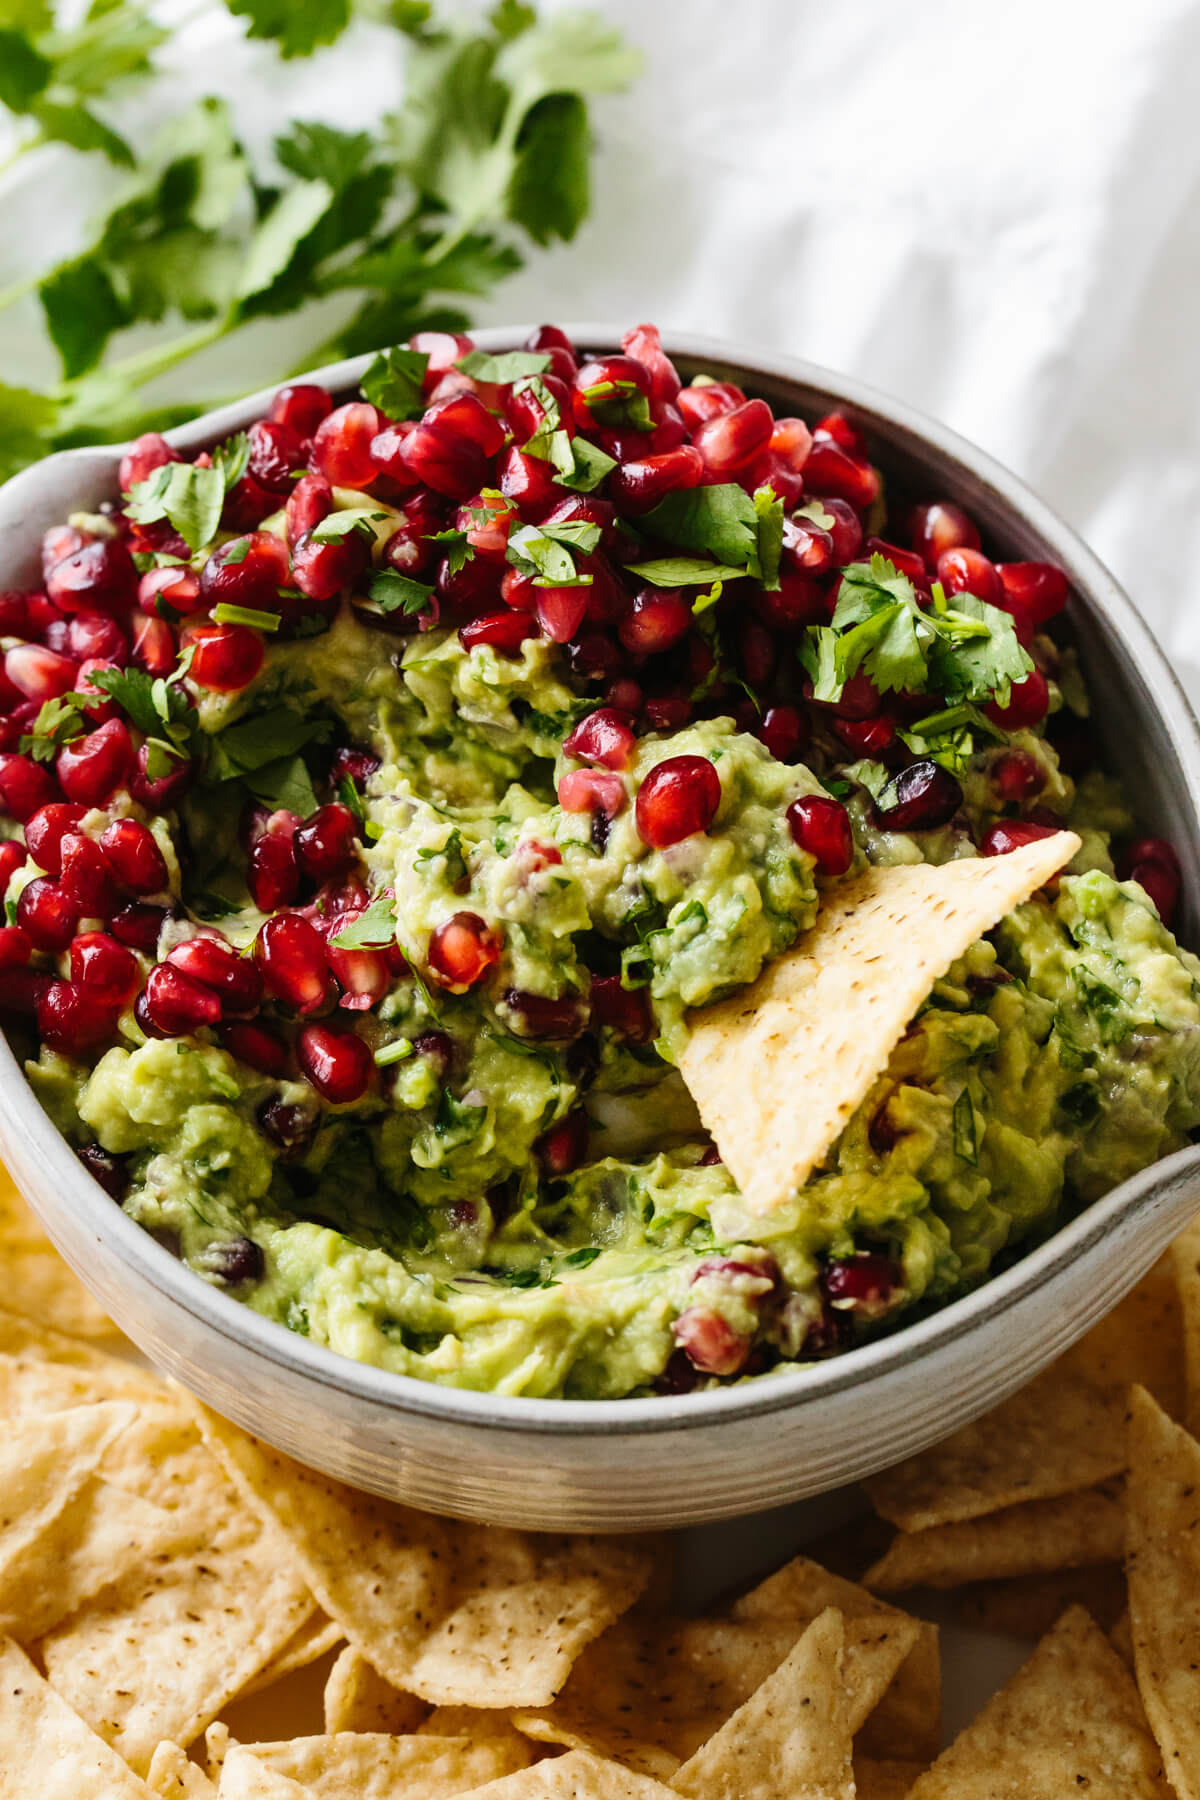 A tortilla chip scooping up pomegranate guacamole.